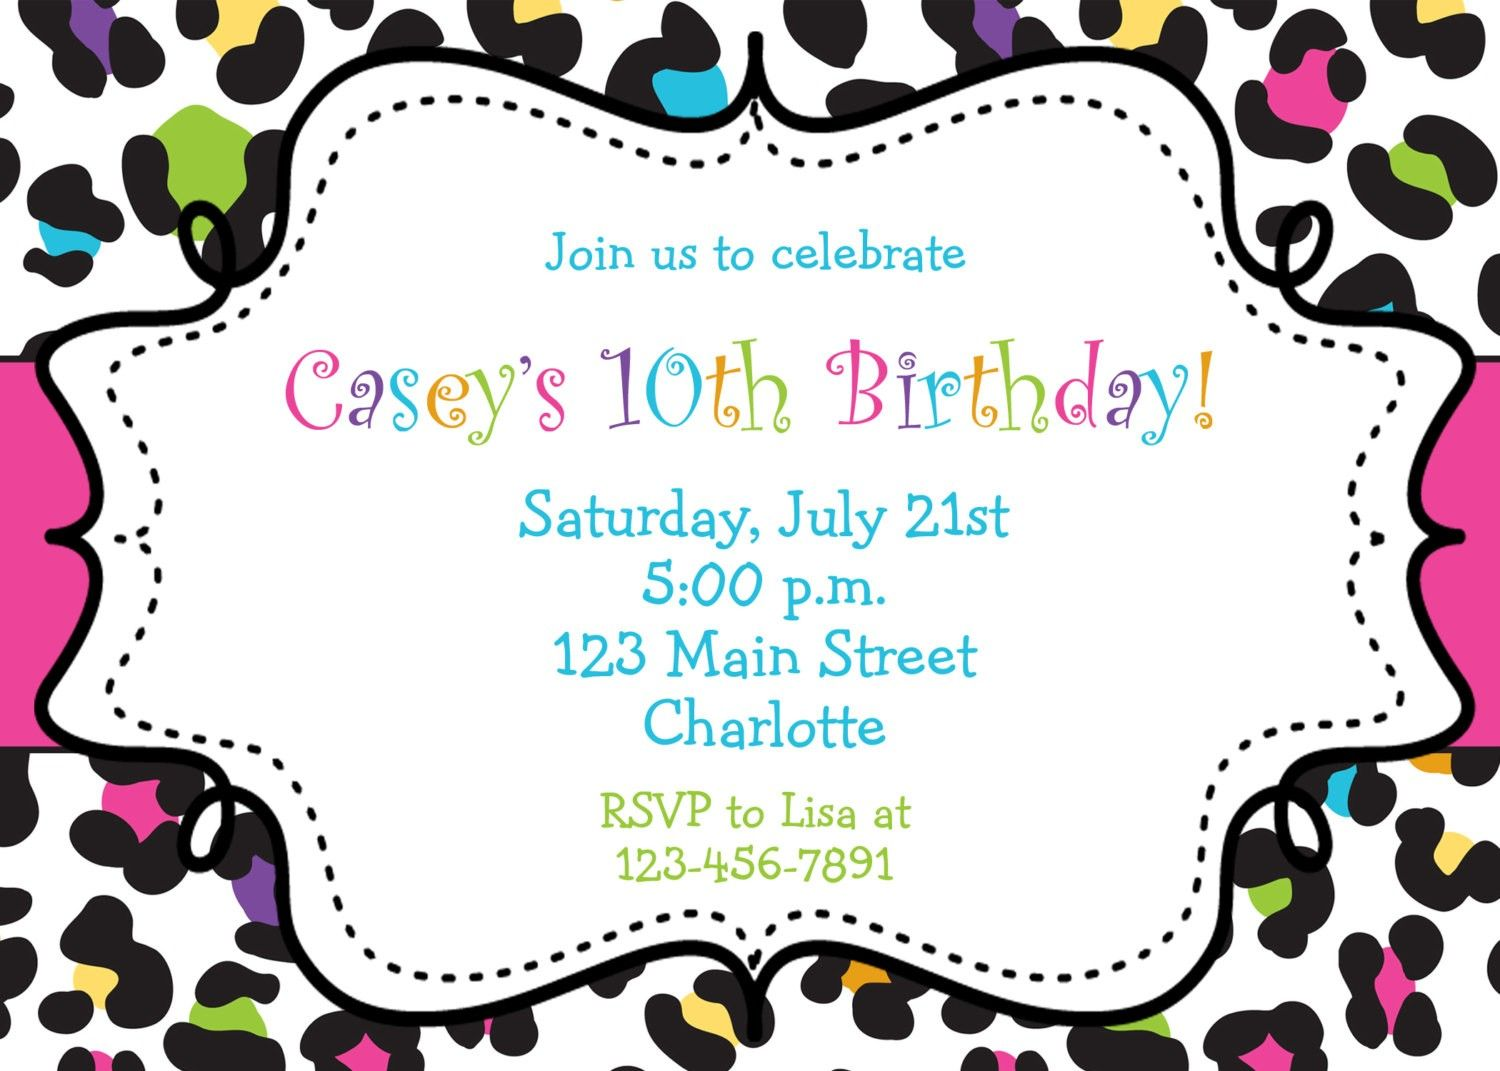 Free Printable Birthday Party Invitations For Tween Girls | maria ...